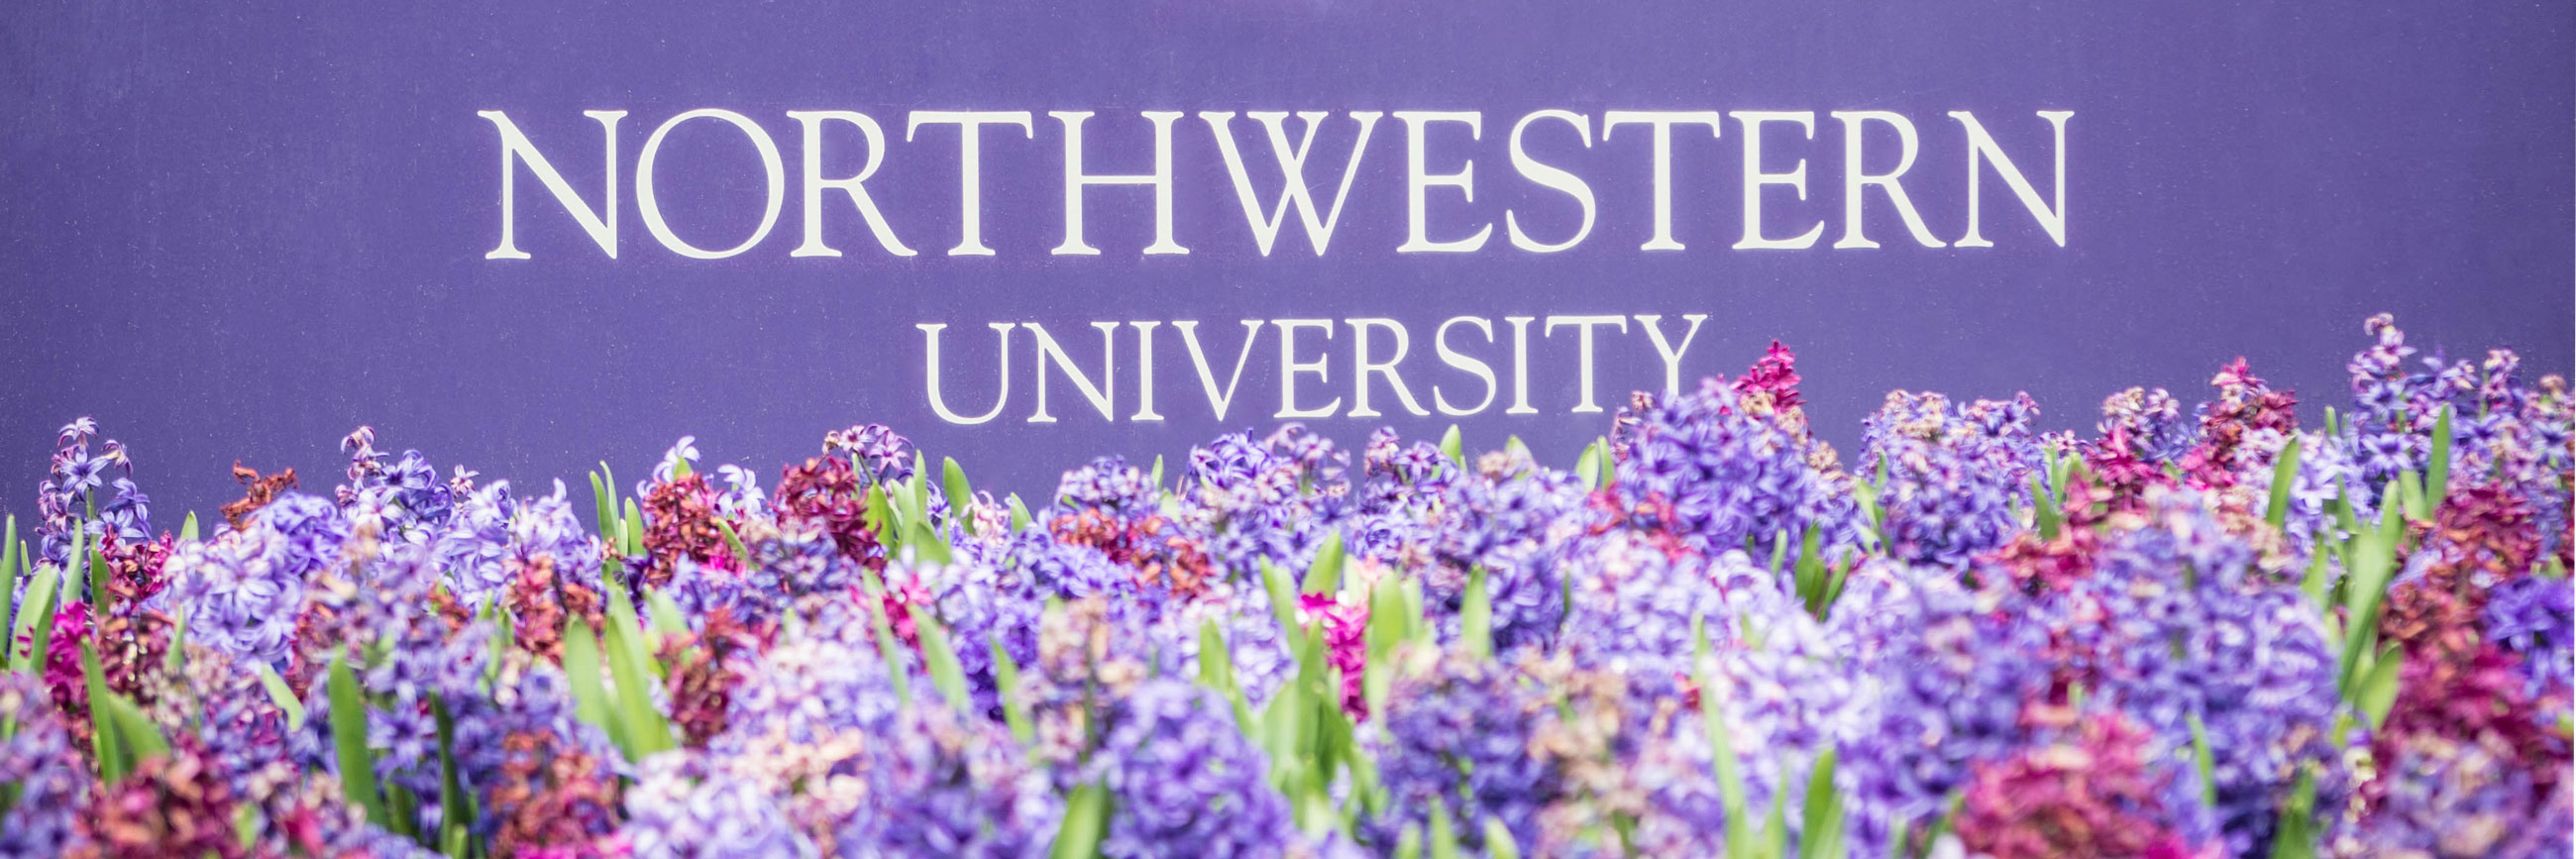 Purple lilacs in front of a Northwestern University sign.